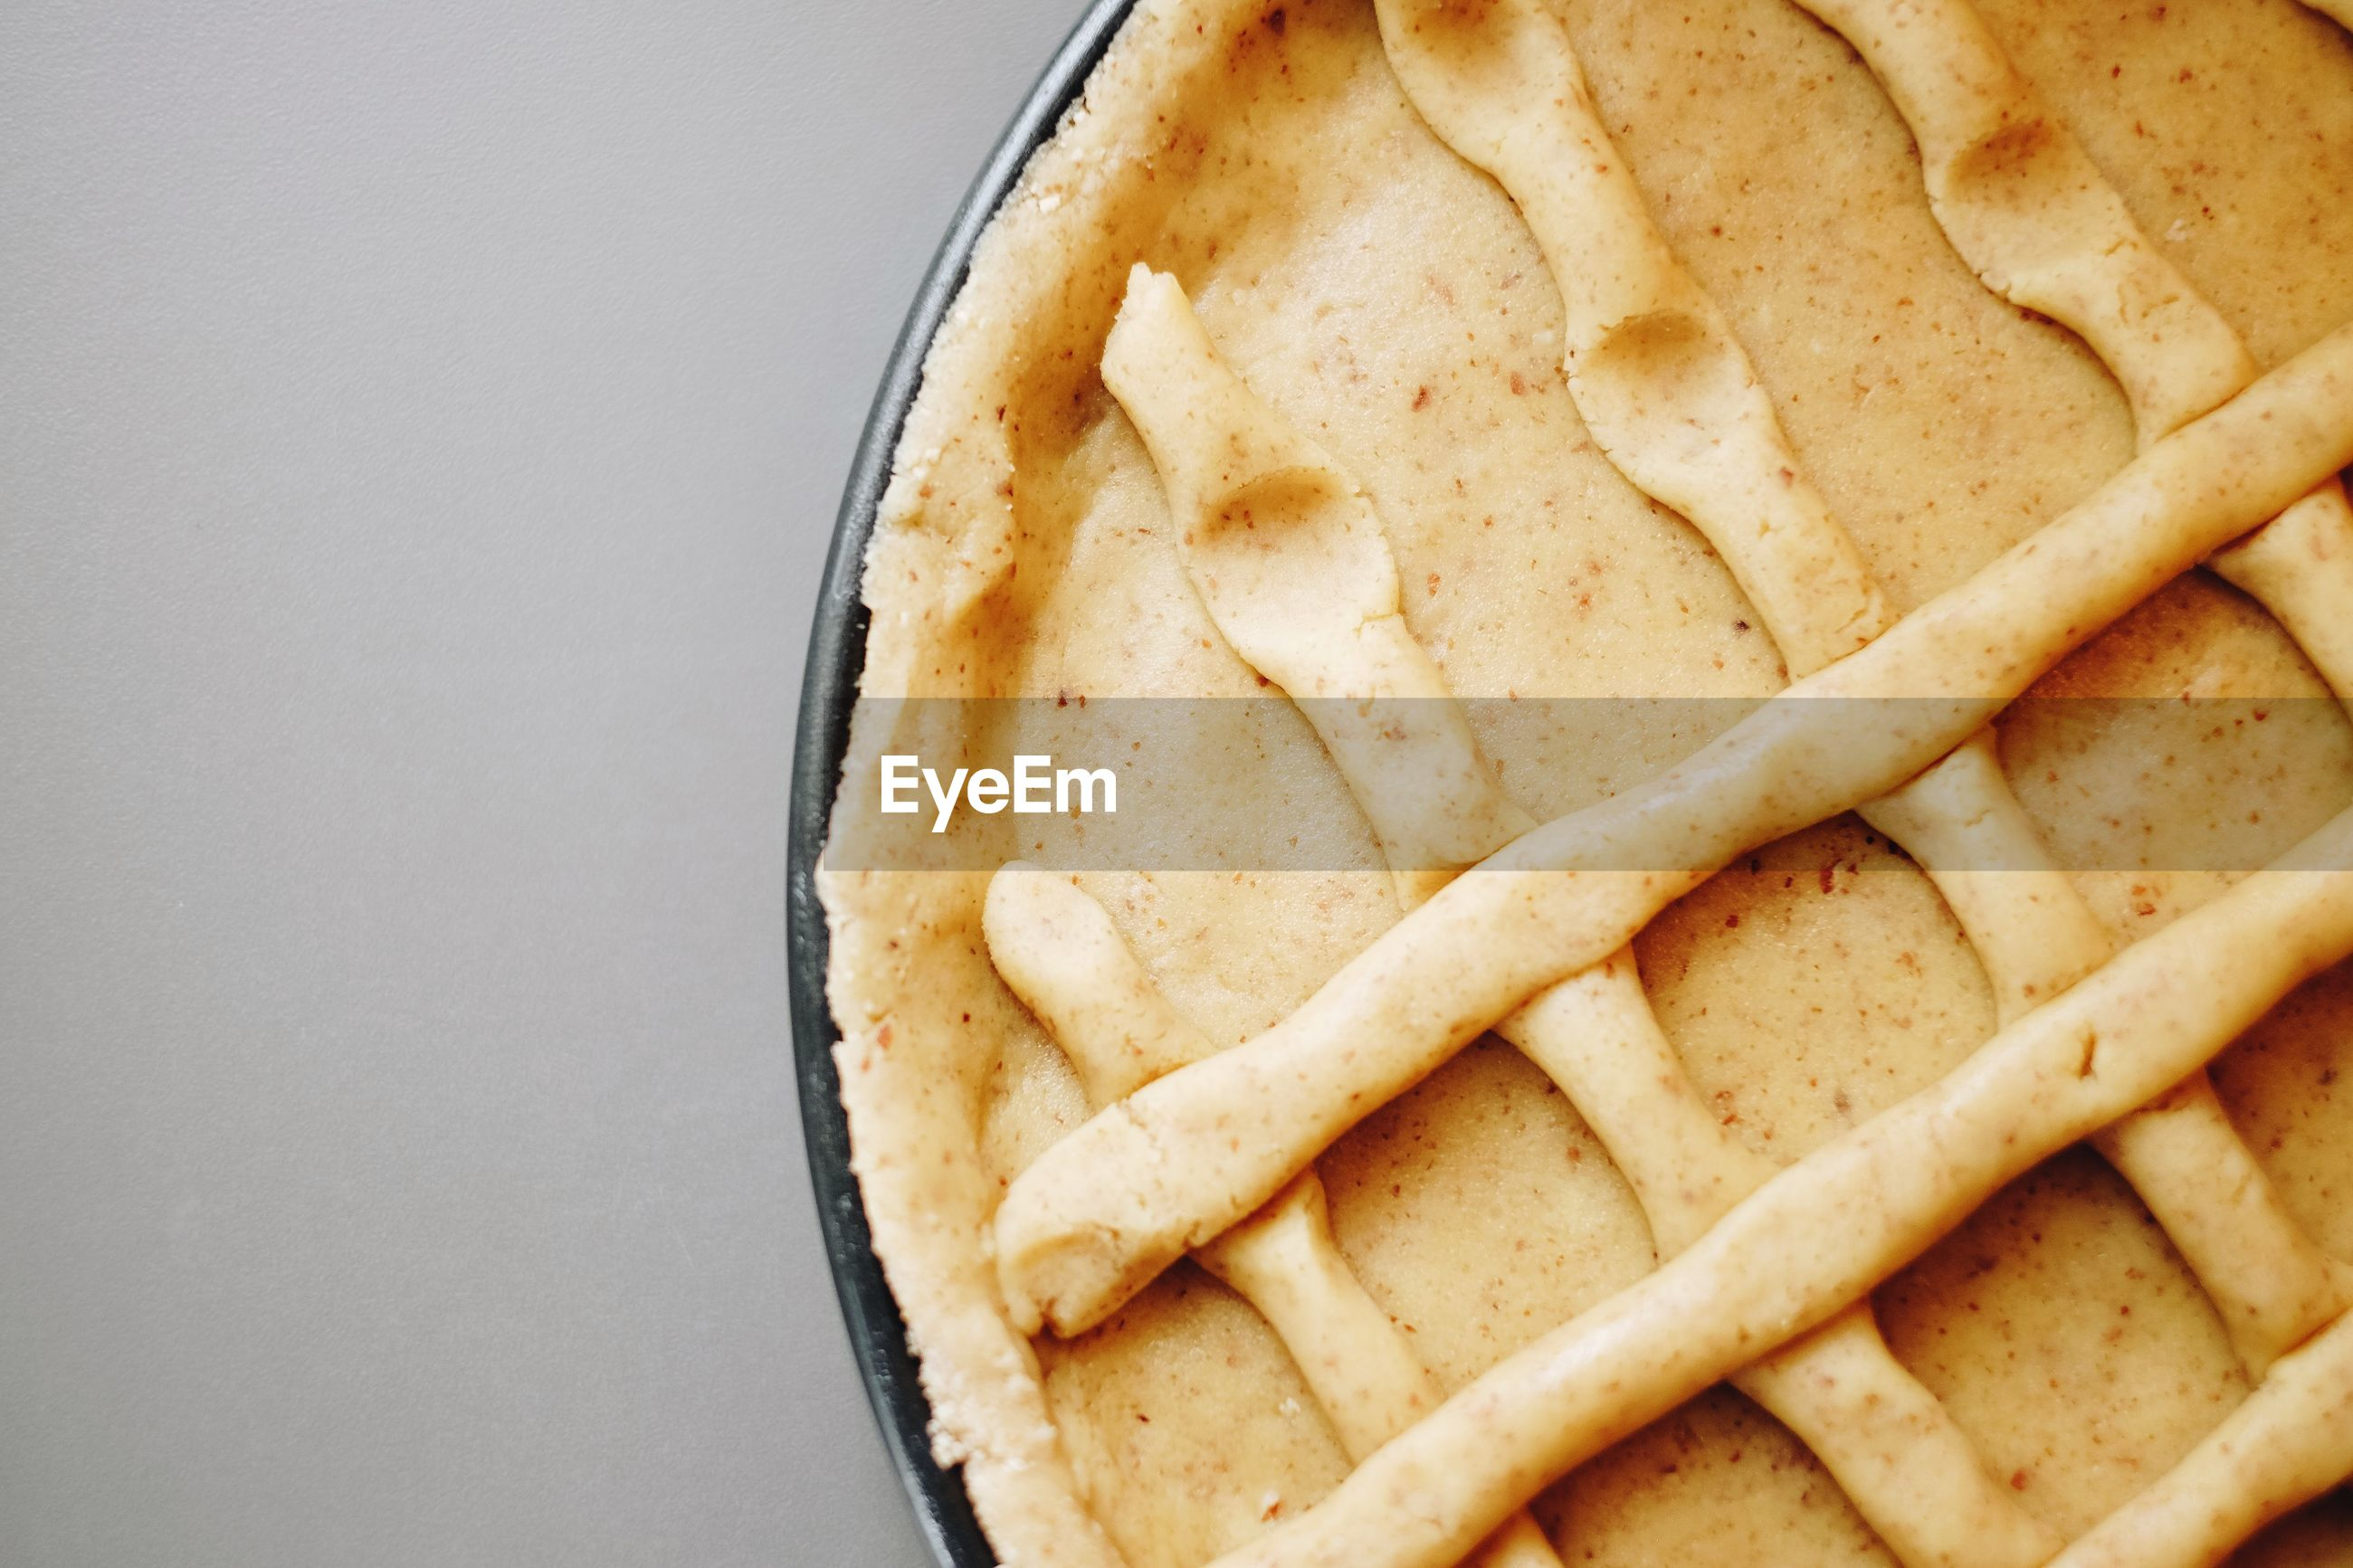 Close-up of baked pie